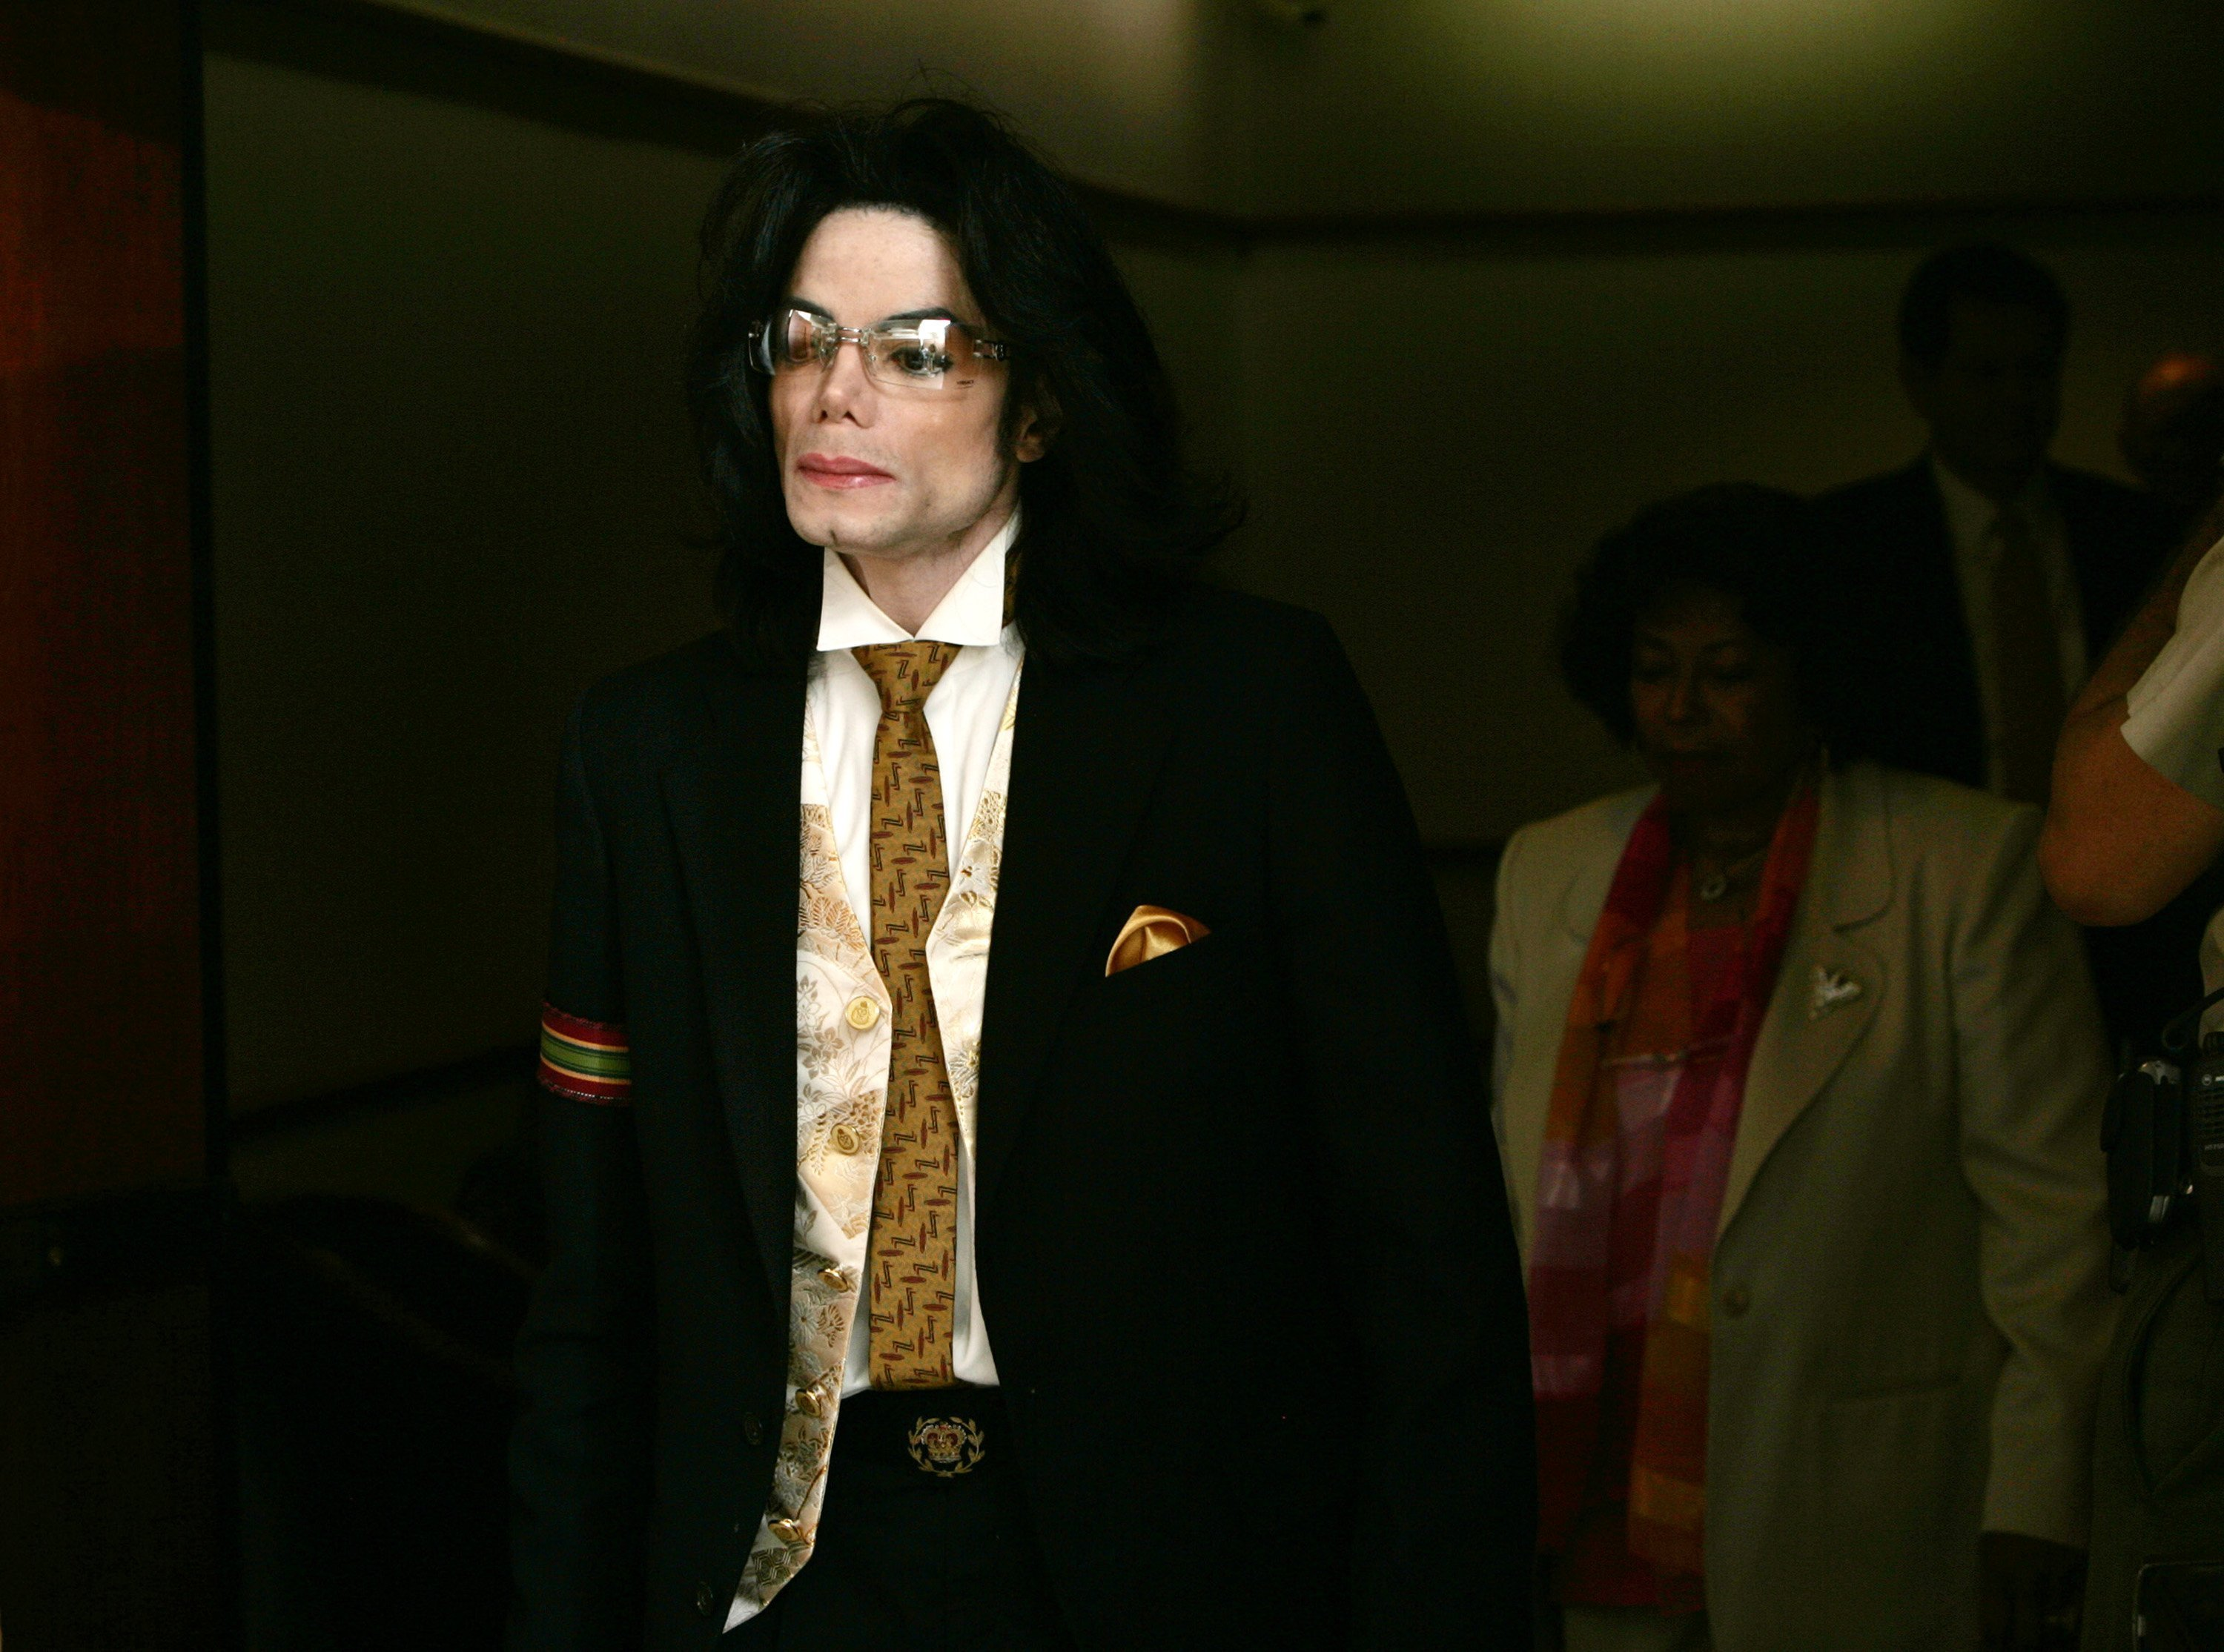 Michael Jackson leaving the courtroom of Santa Barbara County Courthouse on June 3, 2005 during the second day of closing arguments for his child molestation trial. | Photo: Getty